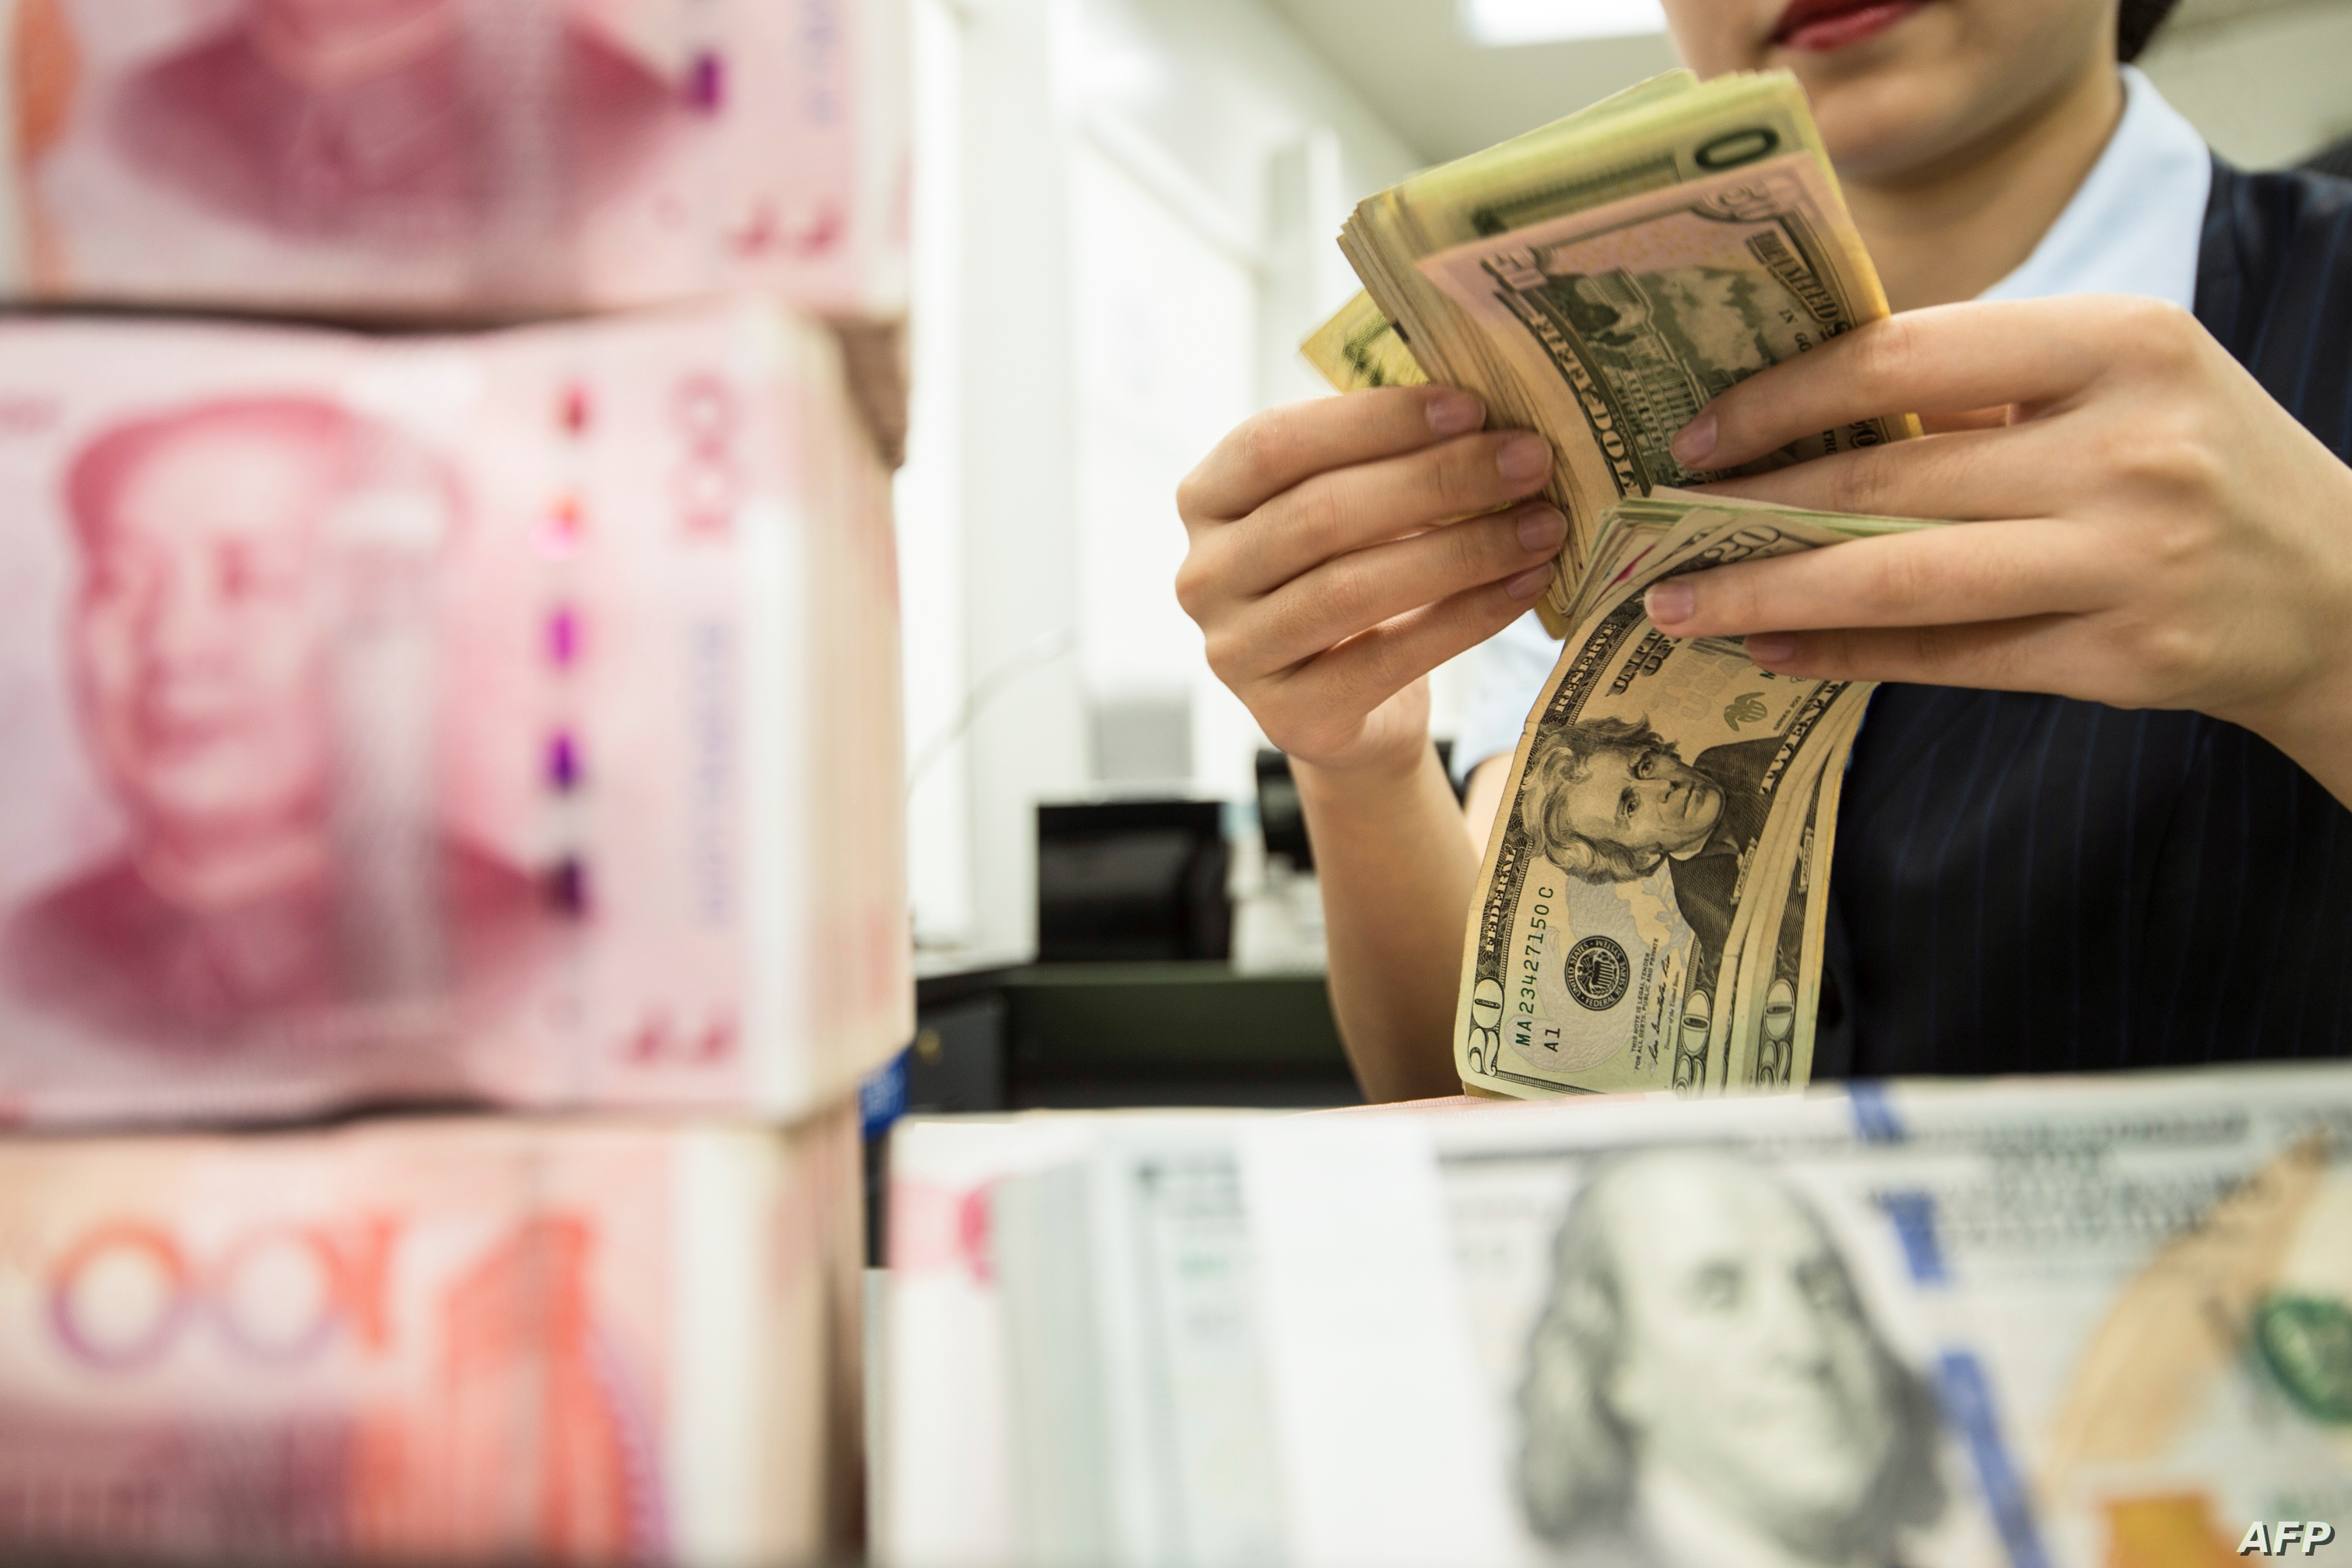 China issues $ 2.8 trillion bond in five months